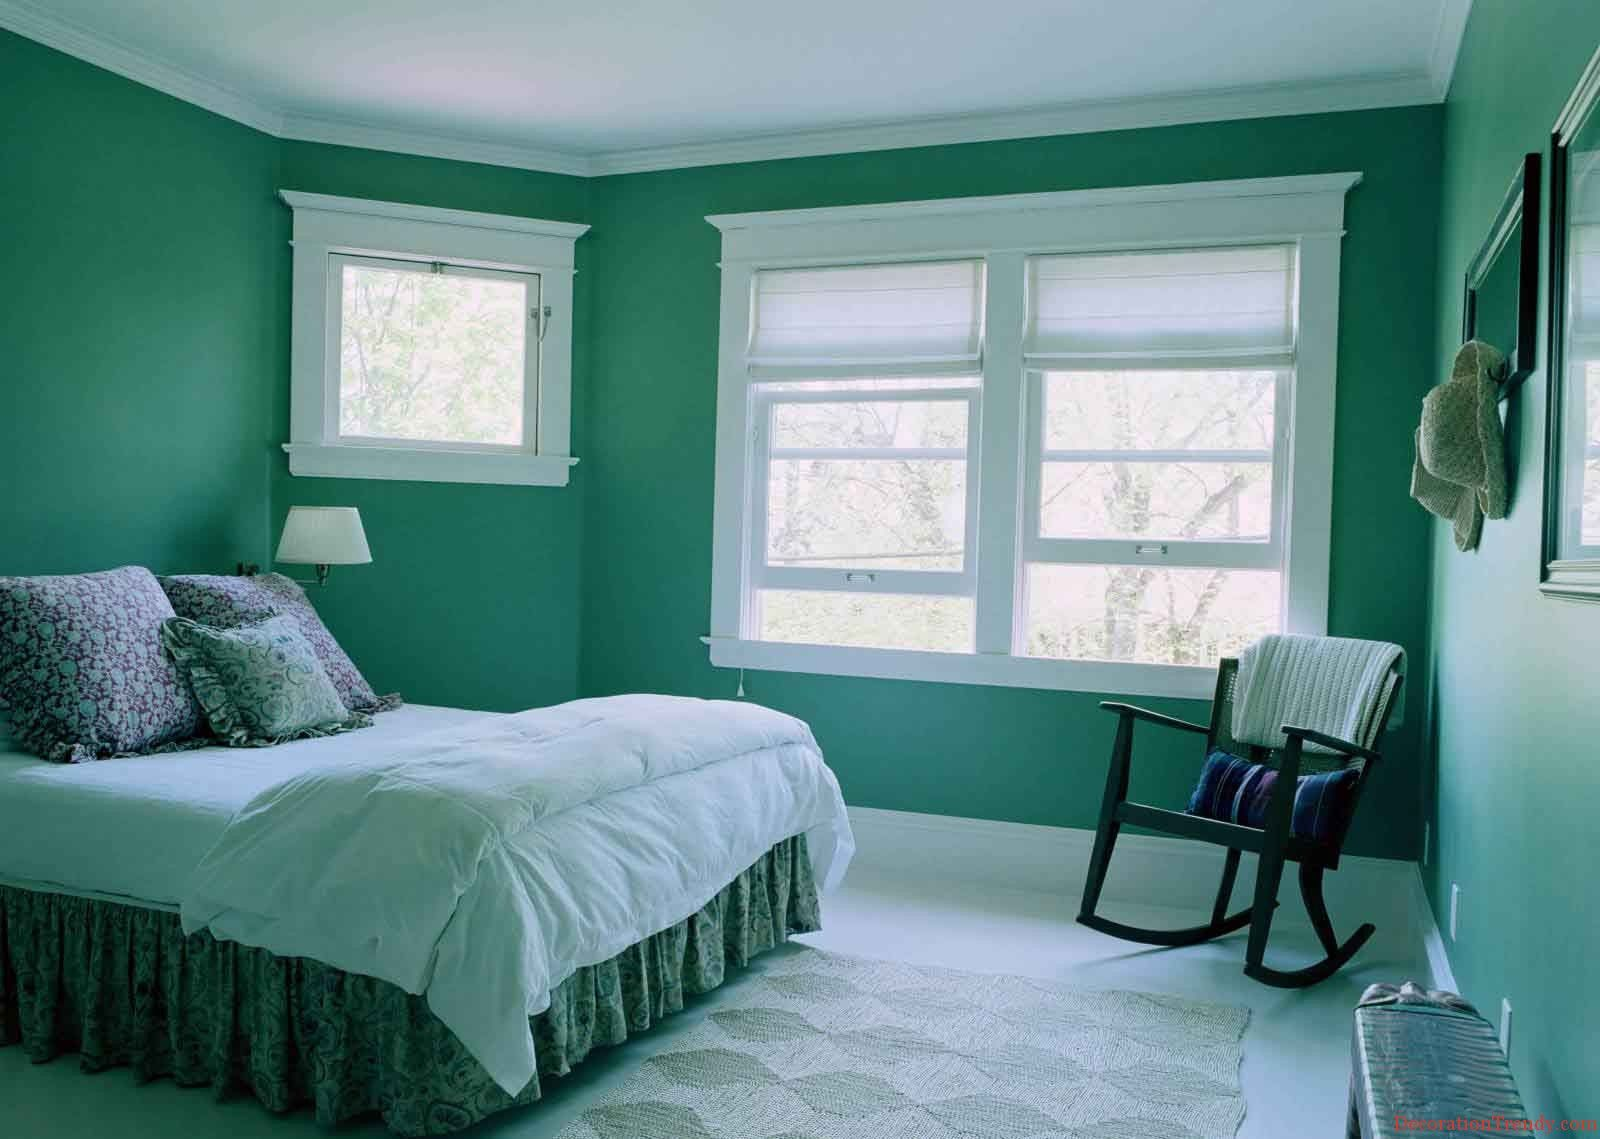 Green bedroom ideas for women - Wall Color Combination Design Ideas And Photos Get Creative Wall Painting Ideas Designs For Green Brown Bedroomslight